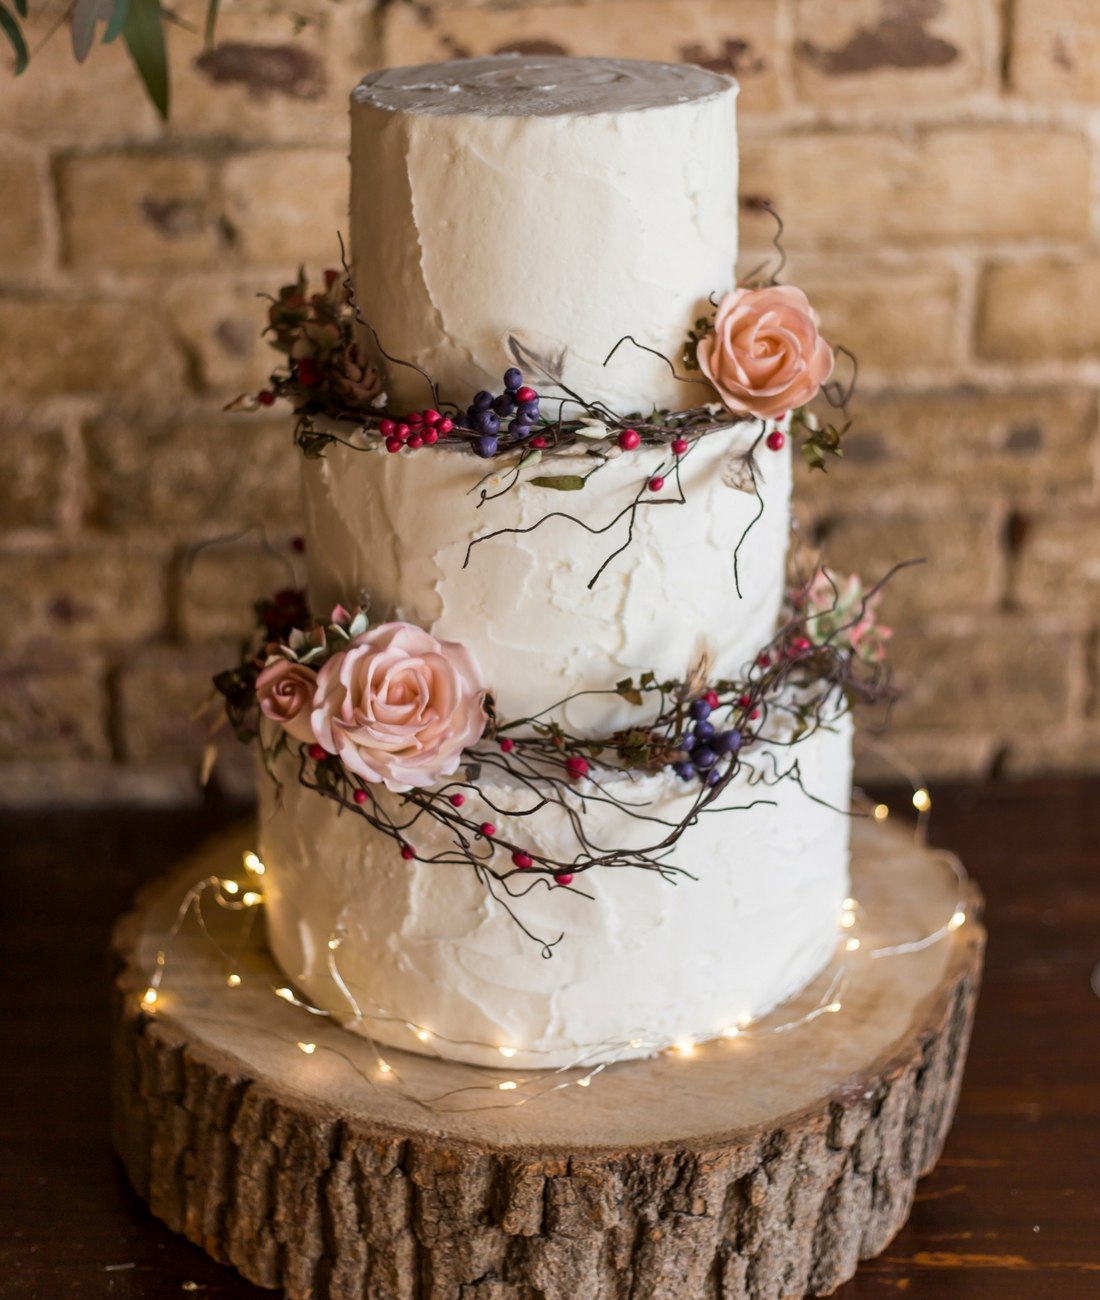 Love Artisan Wedding Cakes - Ivory Floral Rustic Wedding Cake